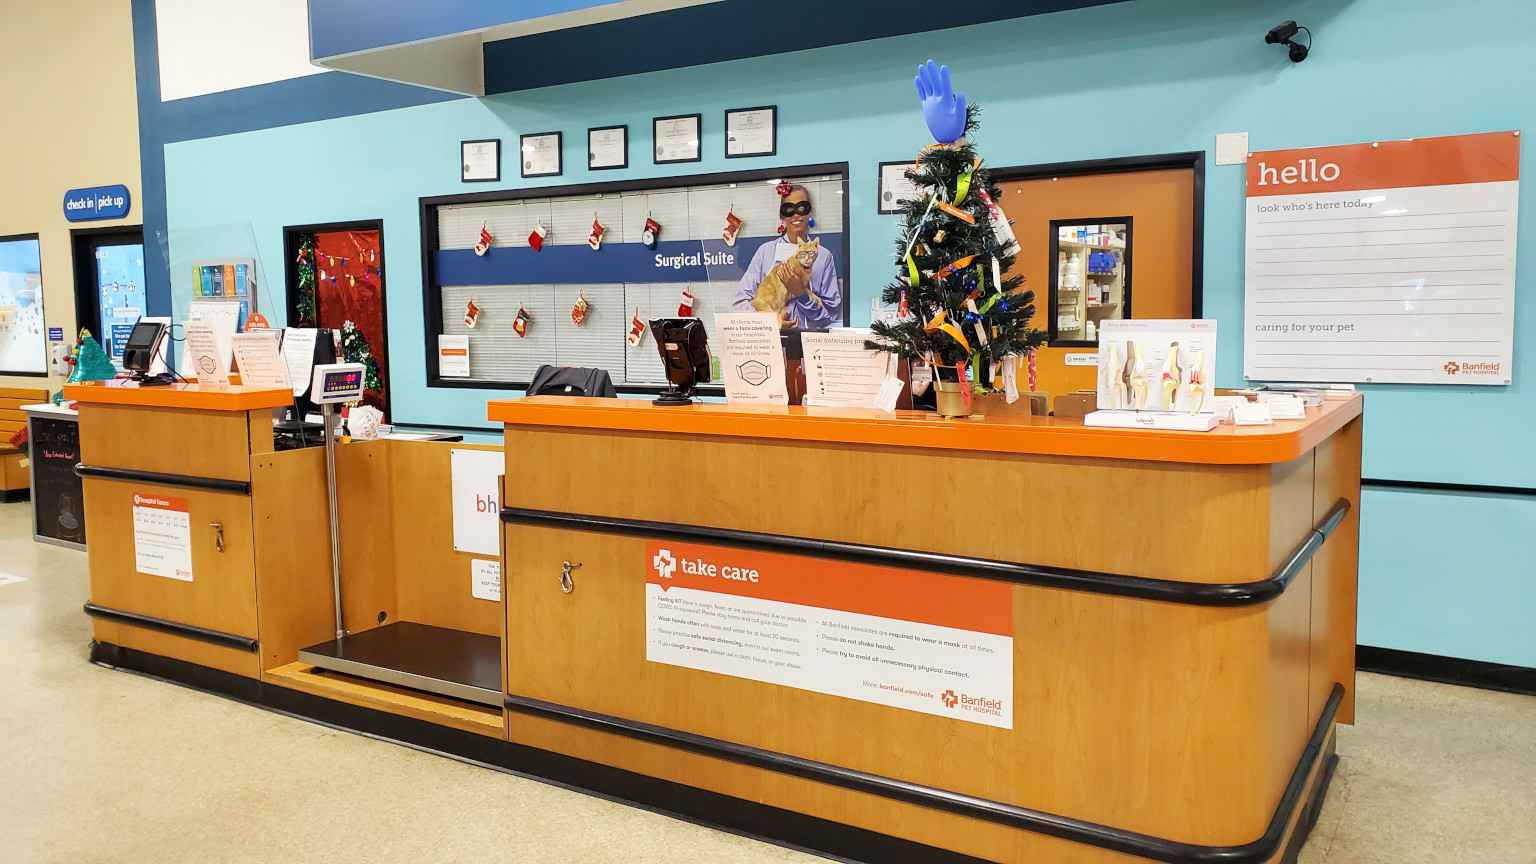 The front desk of the Banfield Pet Hospital, Myrtle Beach, SC